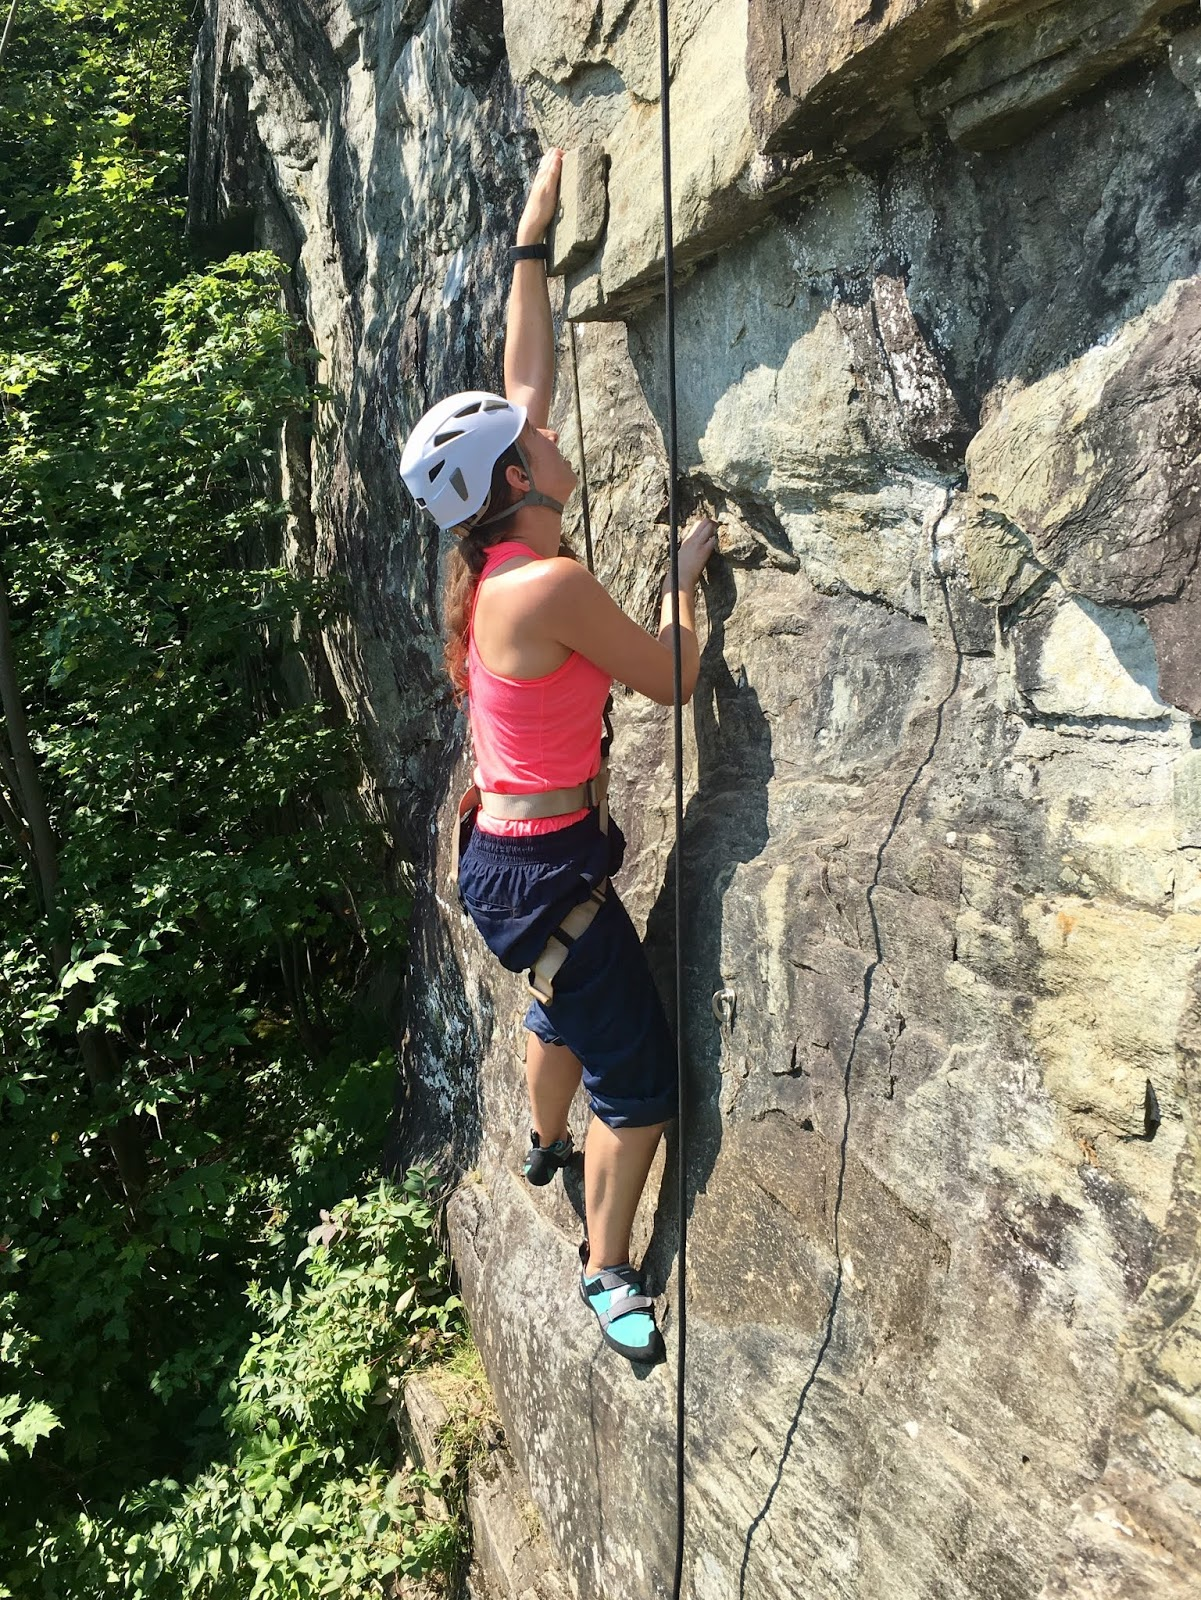 Capt. Rachel Antone climbs a cliff face in the woods near the Army Mountain Warfare School. She is wearing full climbing gear including a helmet and harness.